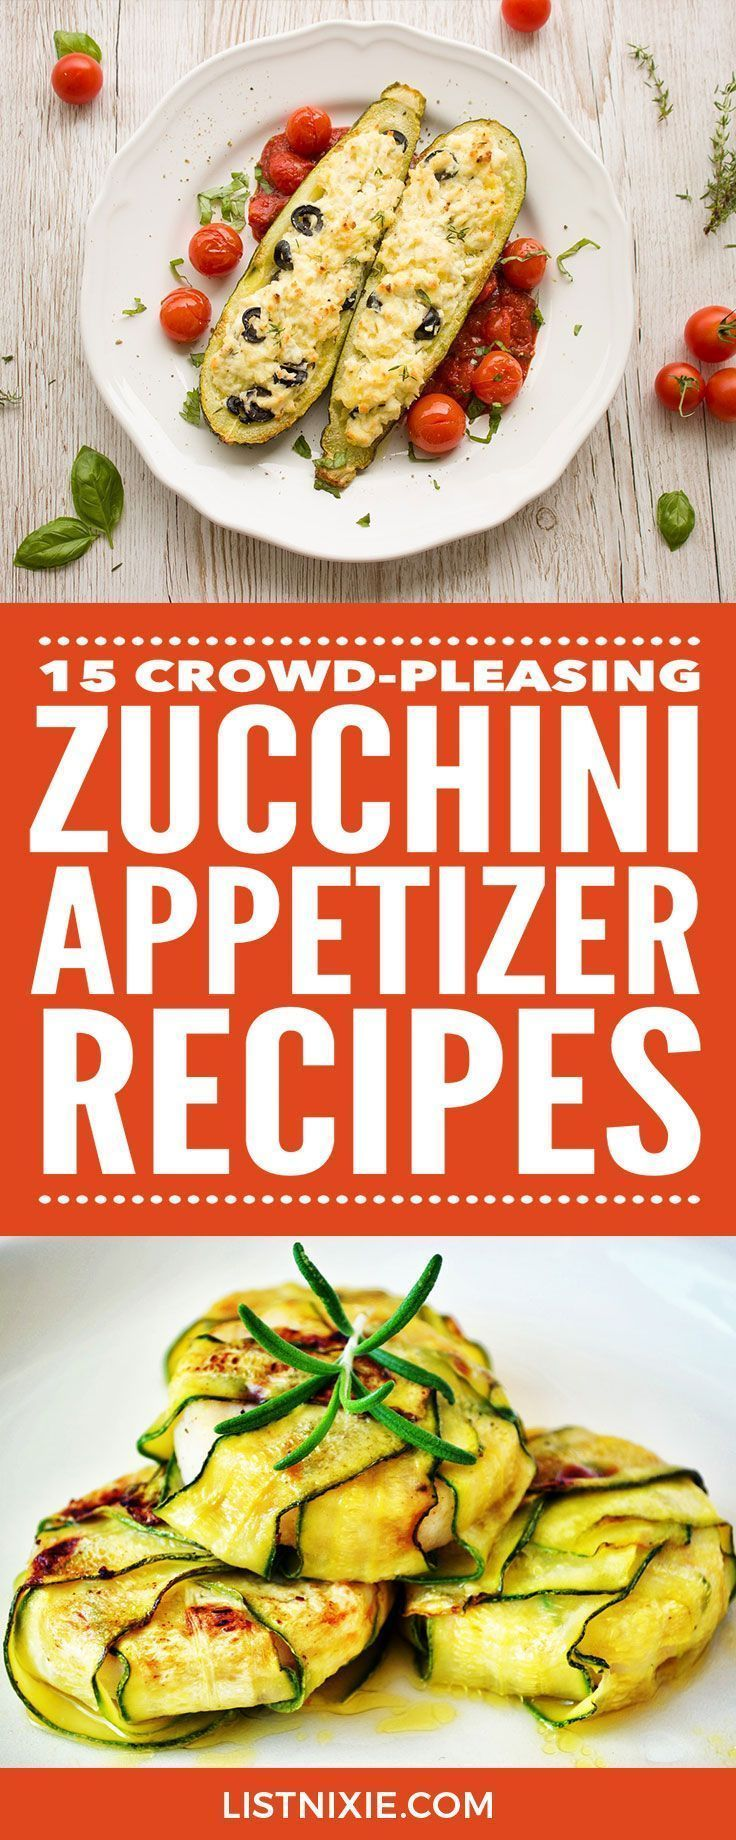 15 tasty zucchini recipes to help you enjoy the harvest - If you have more zucchini than you know what to do with, these crowd-pleasing zucchini appetizer recipes will help you use up your summer bounty. From quick and easy to fancy, they're all delicious